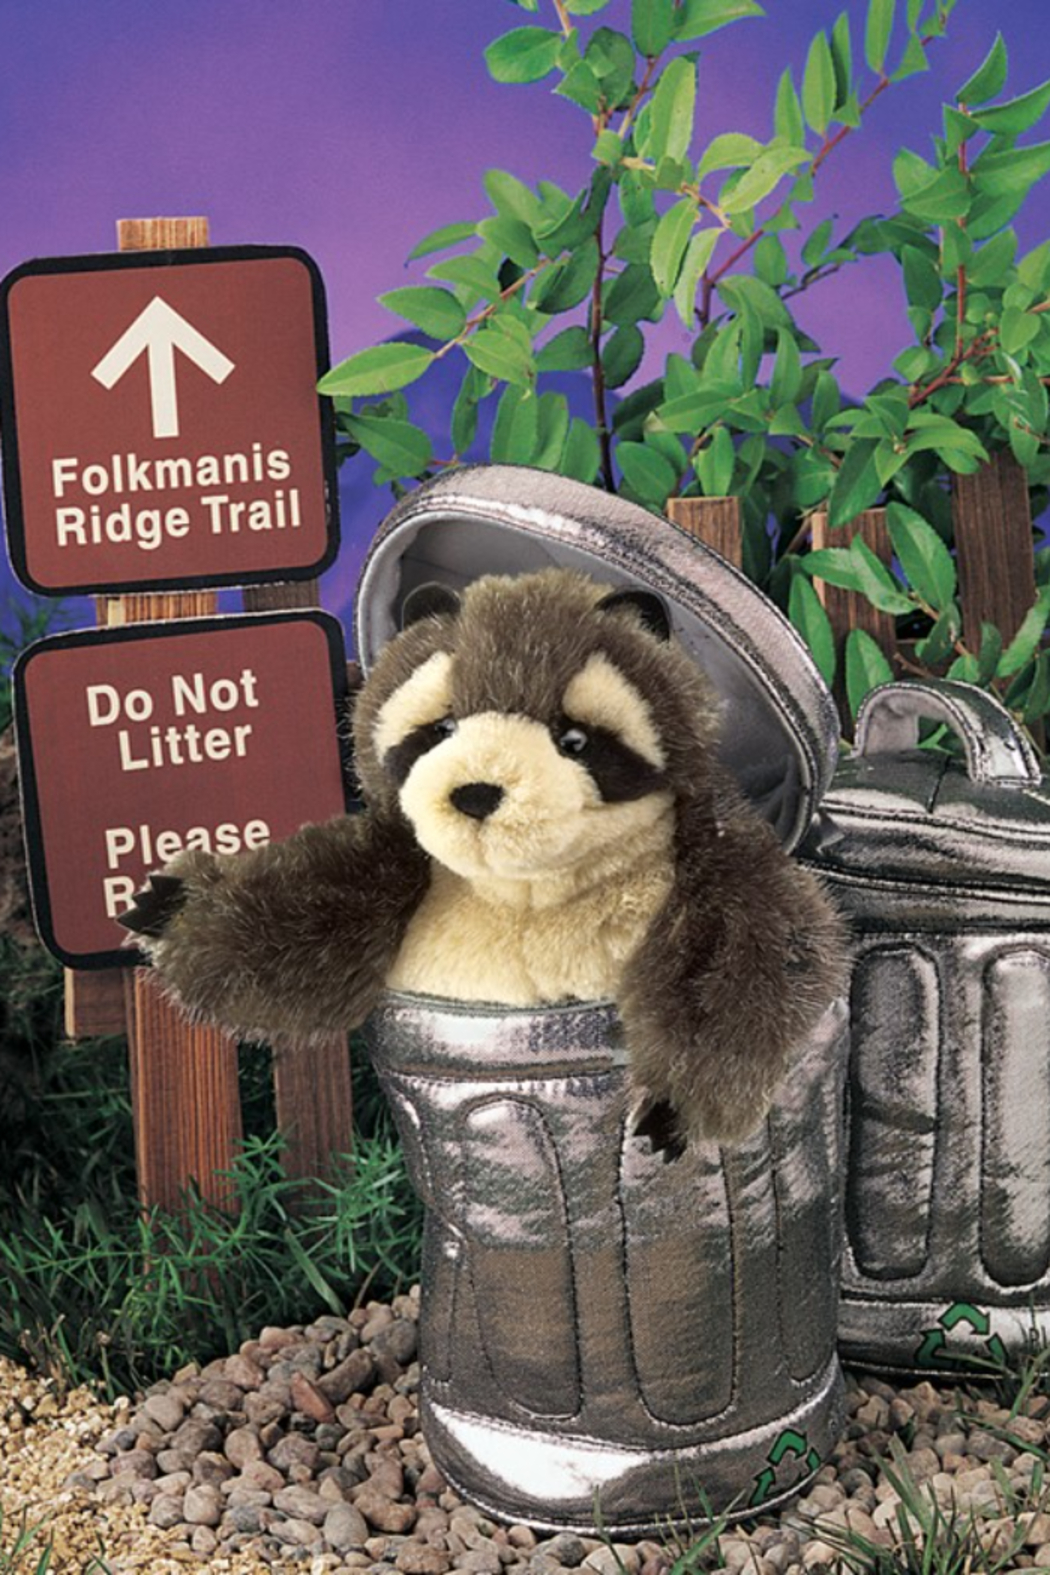 Folkmanis Raccoon In Garbage Can Puppet - Back Cropped Image